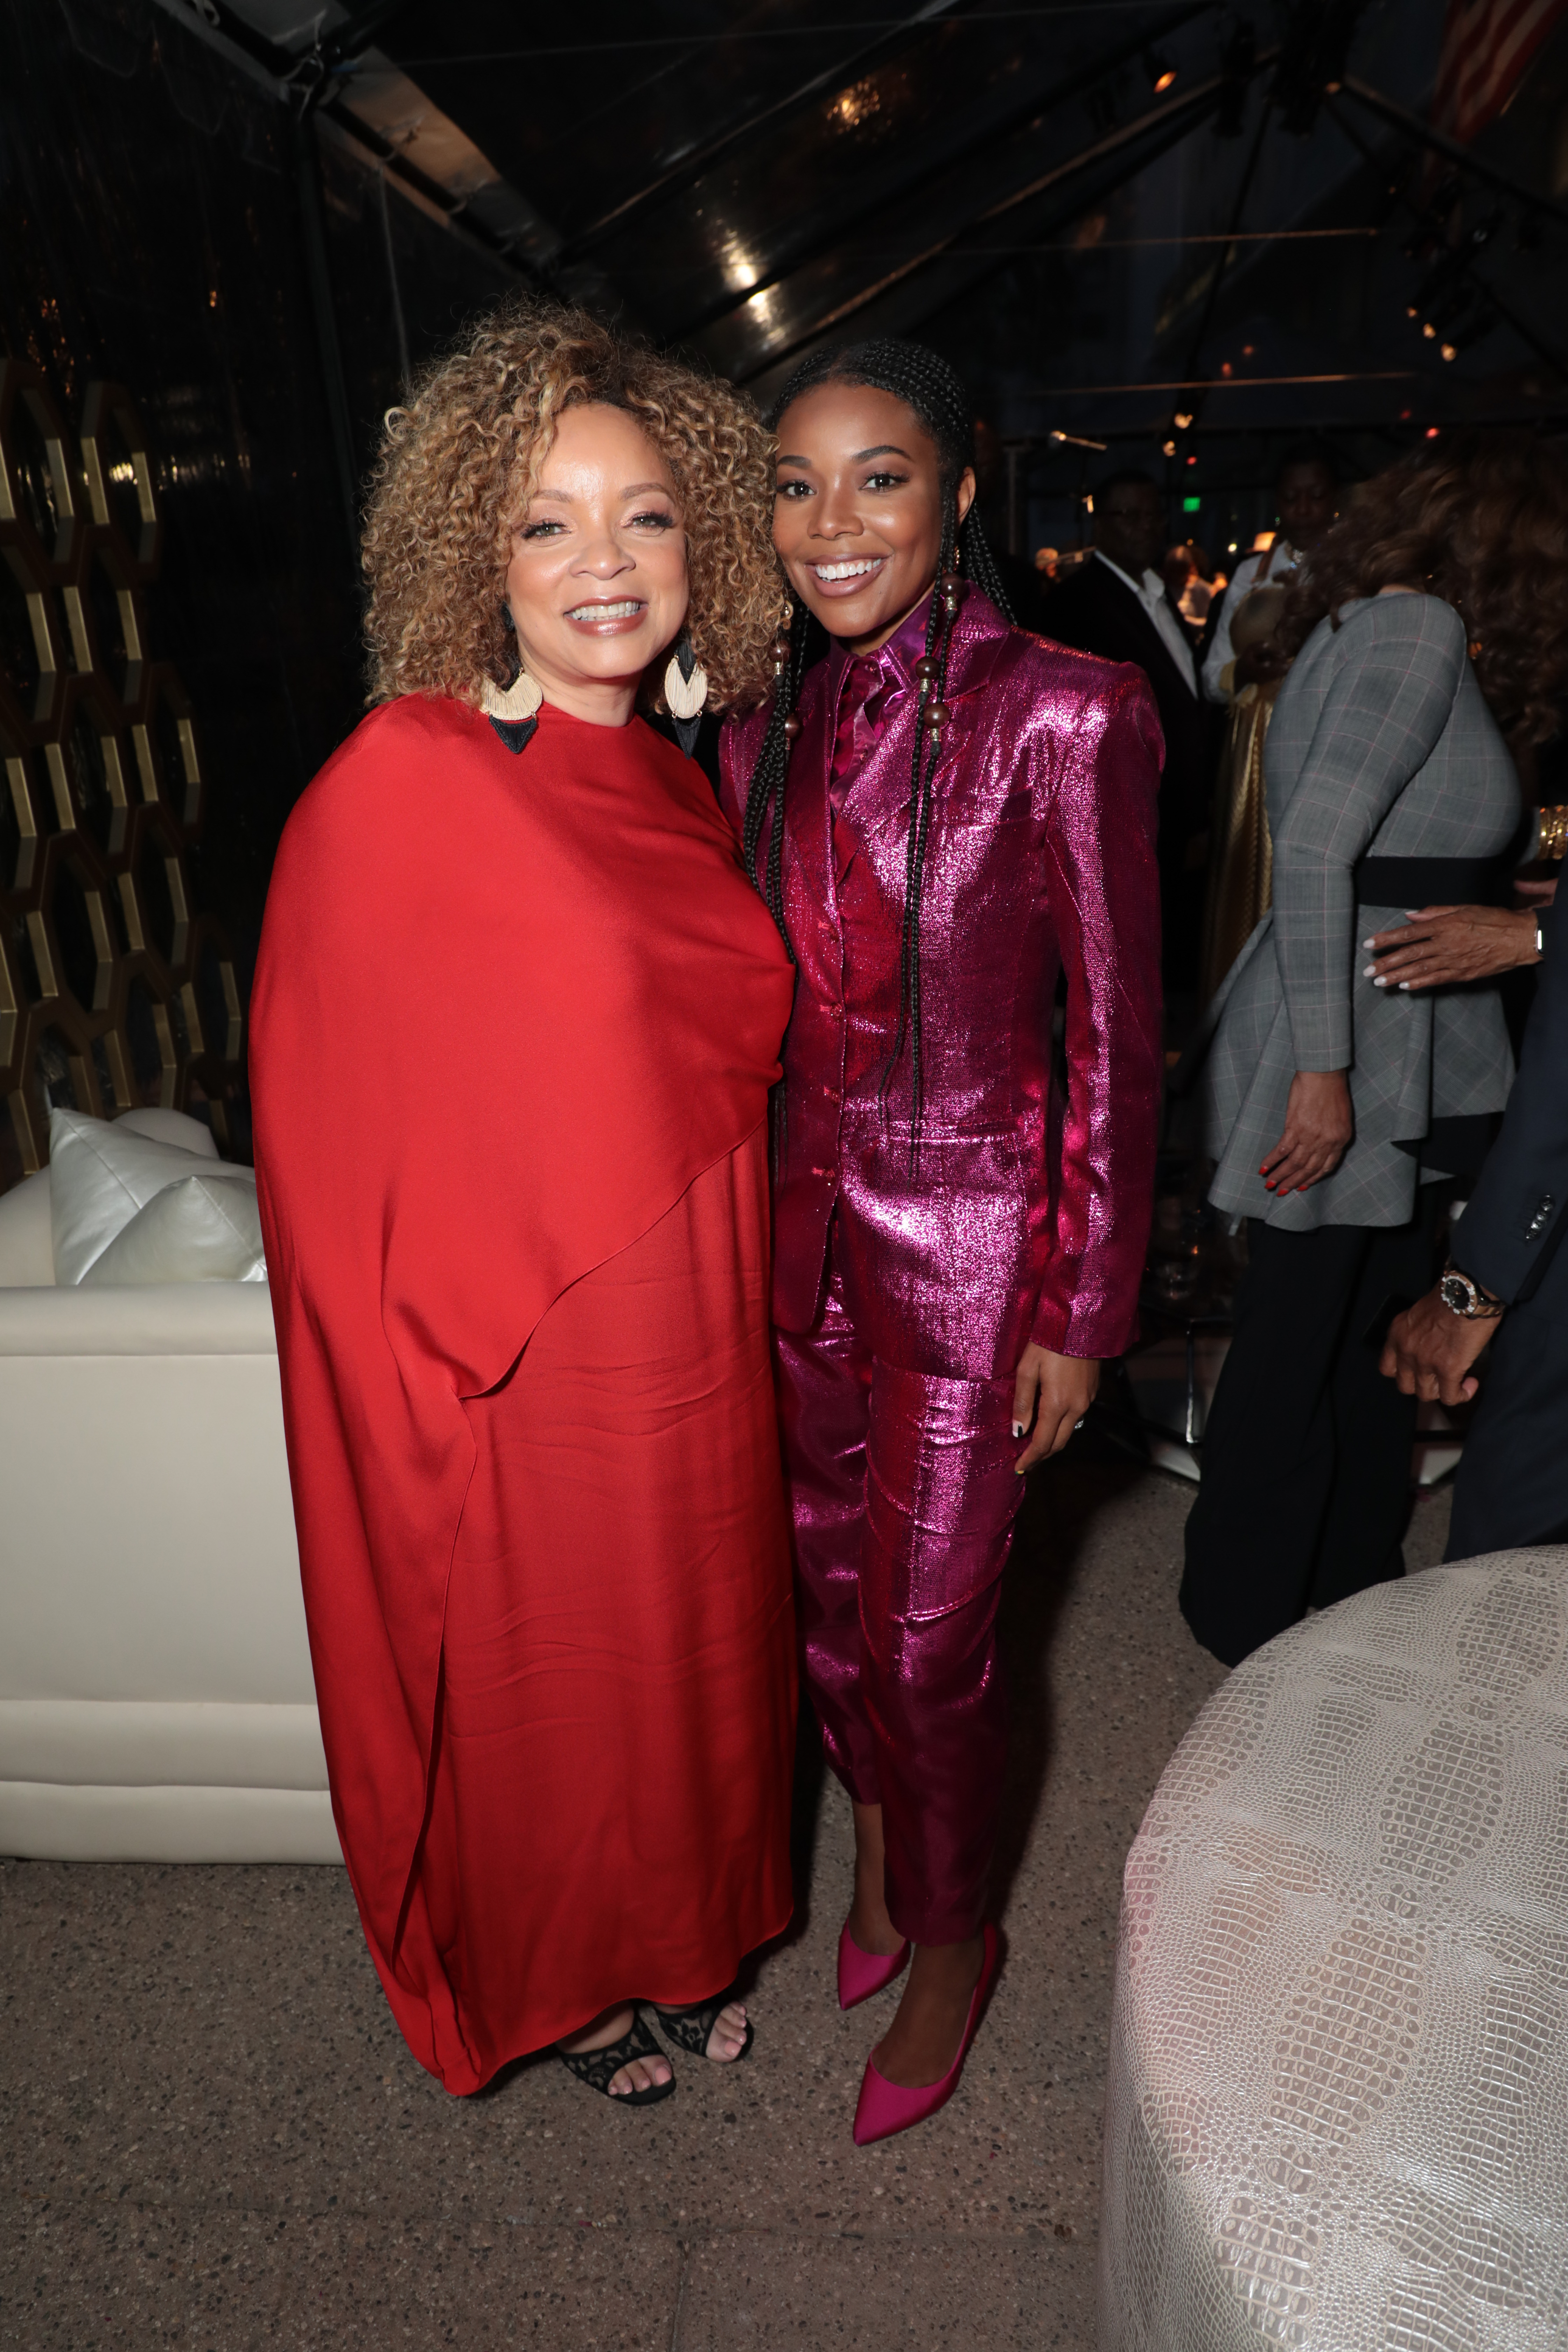 Ruth E. Carter, Black Design Collective Honoree and Academy Award Winning Costume Designer for ÒBlack PantherÓ and Gabrielle Union attend the Black Design CollectiveÕs 1st Annual Scholarship Tribute, honoring Ruth E. Carter, at FIDM, Fashion Institute of Design & Merchandising in Los Angeles, CA on Saturday, April 13, 2019. (Photo: Alex J. Berliner/ABImages)